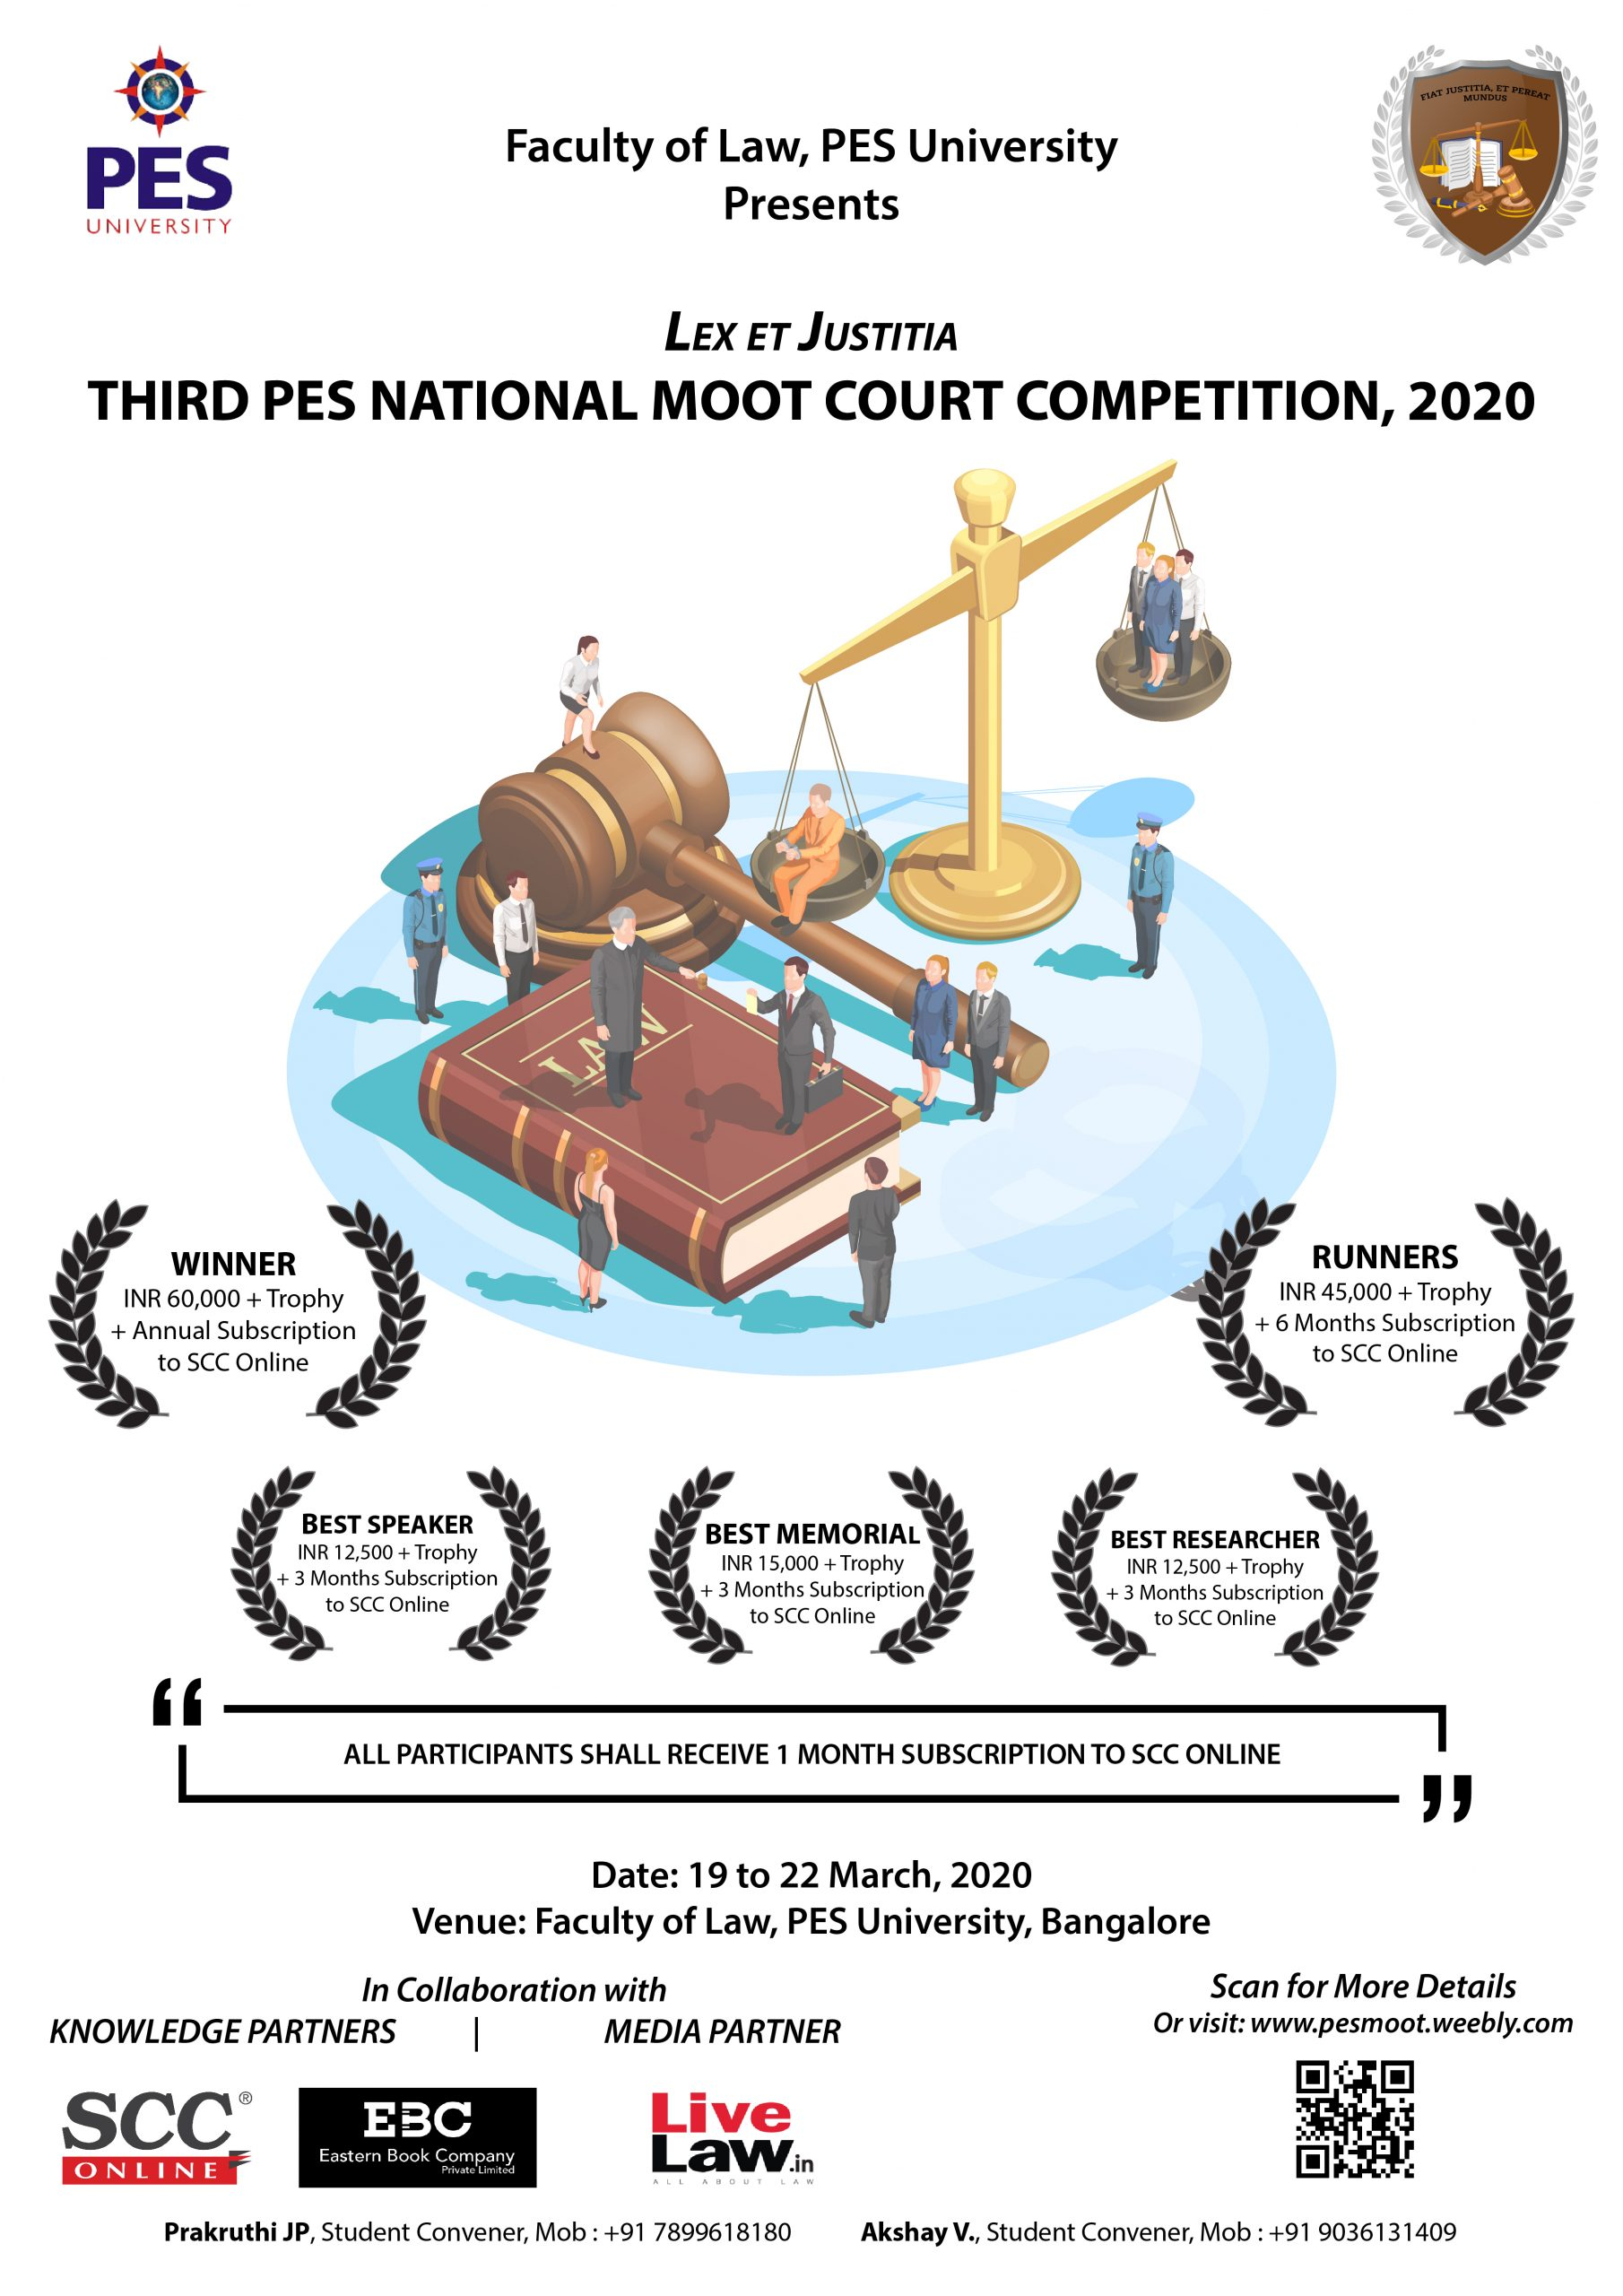 3rd National Moot Court Competition at PES University Faculty of Law, Bangalore